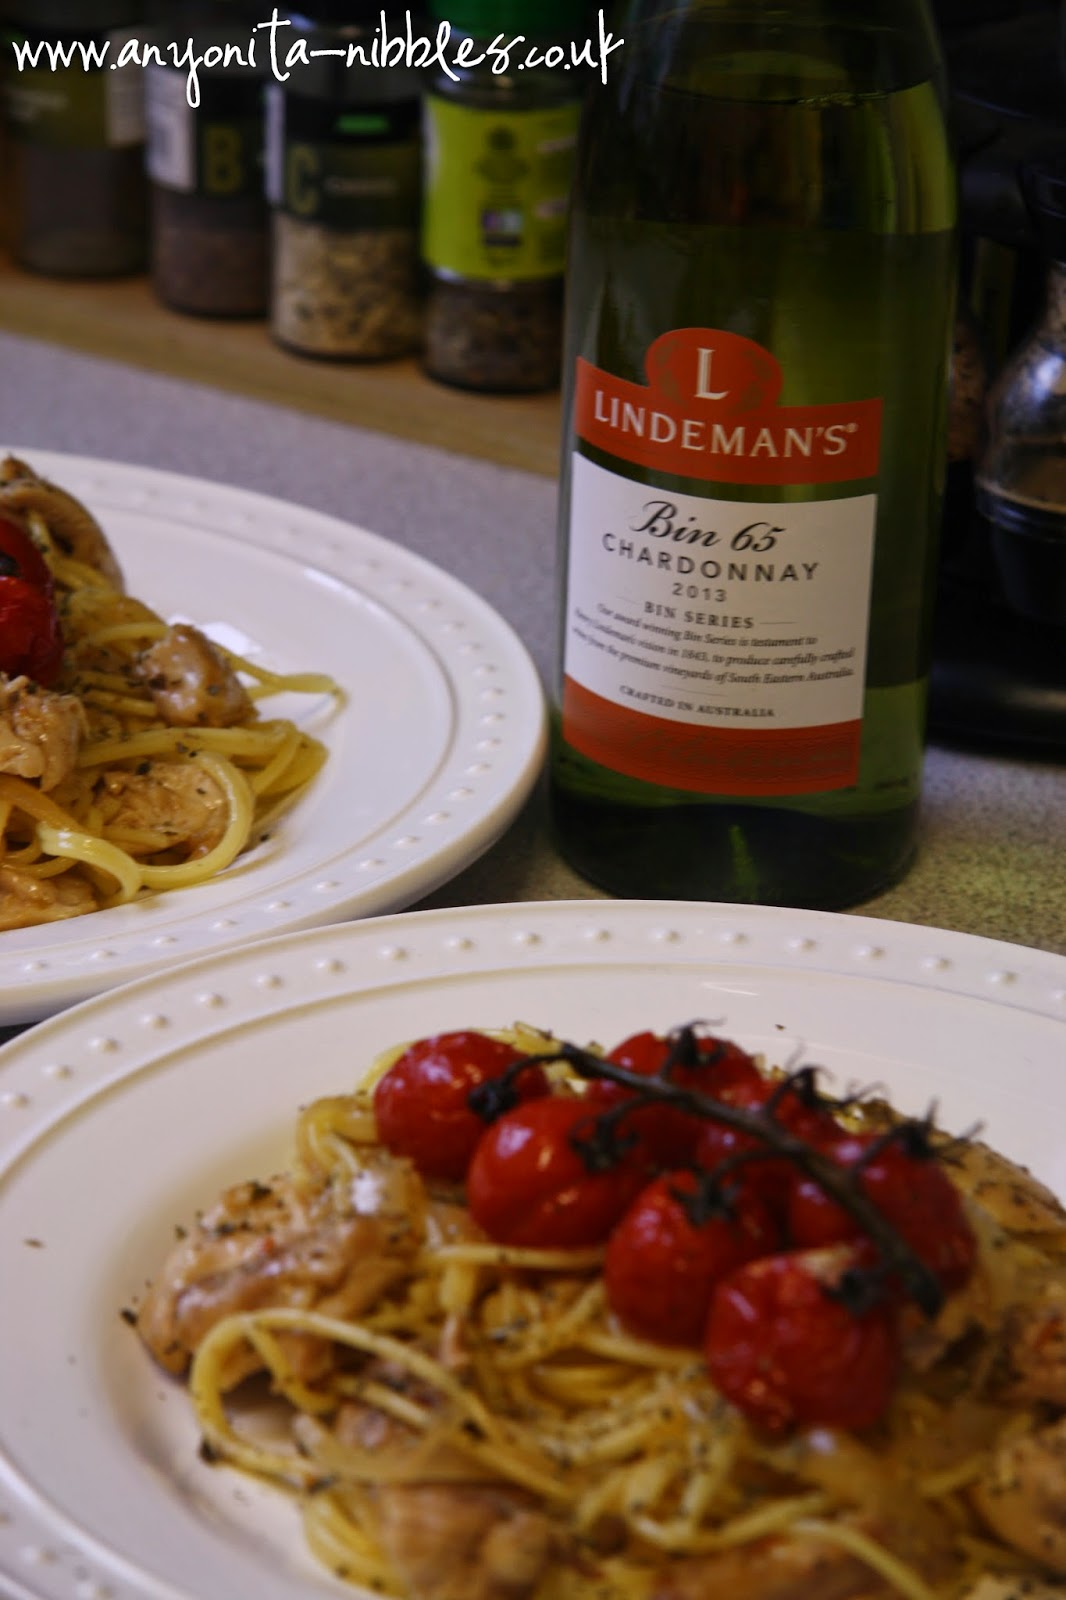 Lindeman's Bin 65 of 2013 Chardonnay pairs well with chicken from www.anyonita-nibbles.co.uk